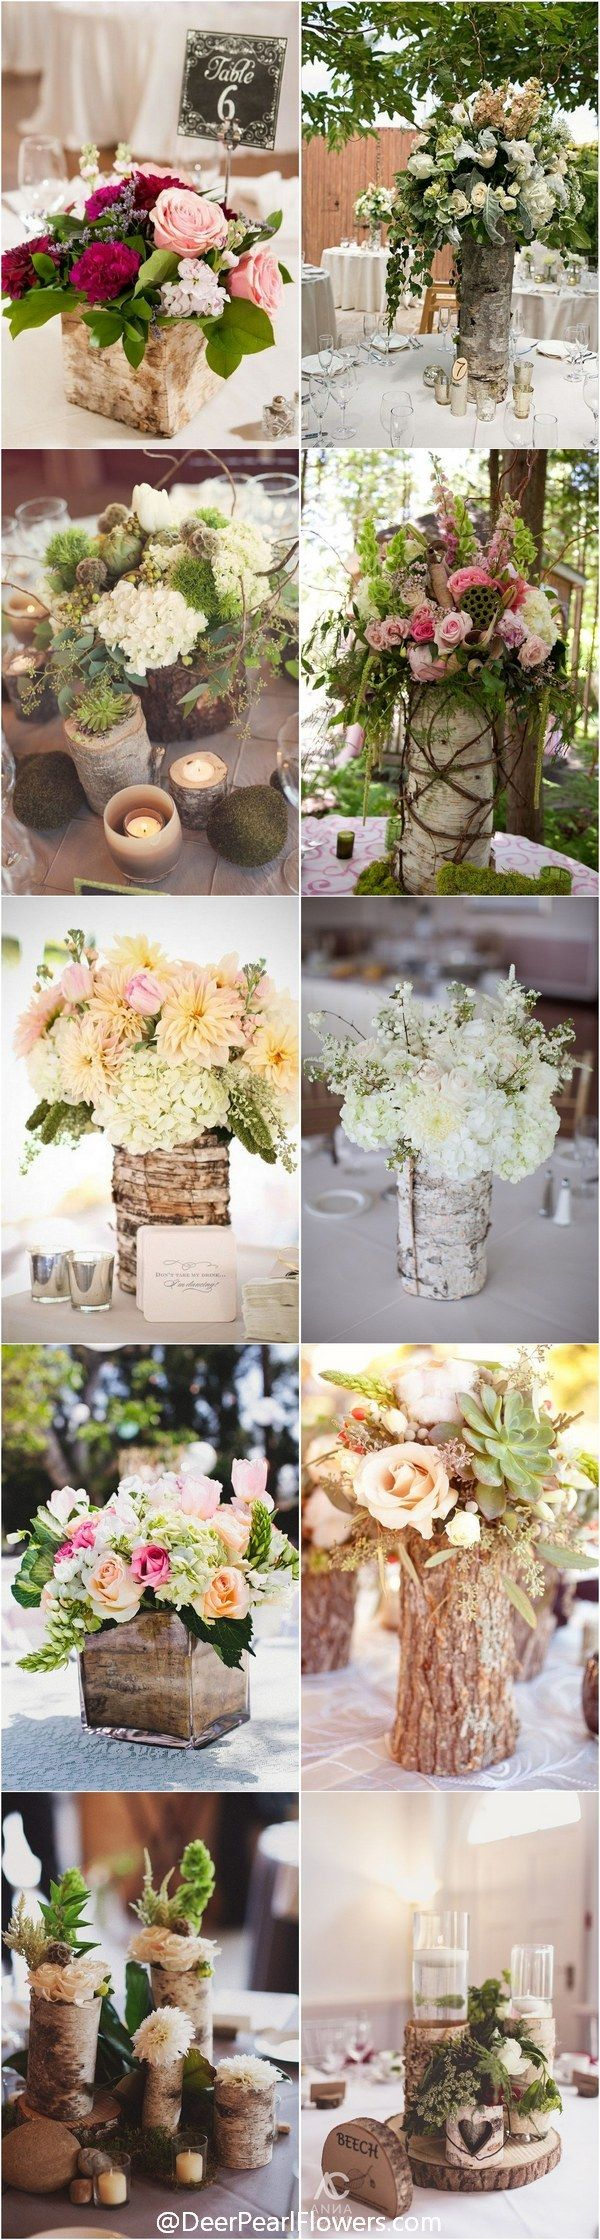 Rustic Country Wedding Ideas - Bark Container Wedding Centerpieces / http://www.deerpearlflowers.com/rustic-wedding-centerpieces-with-bark-container/